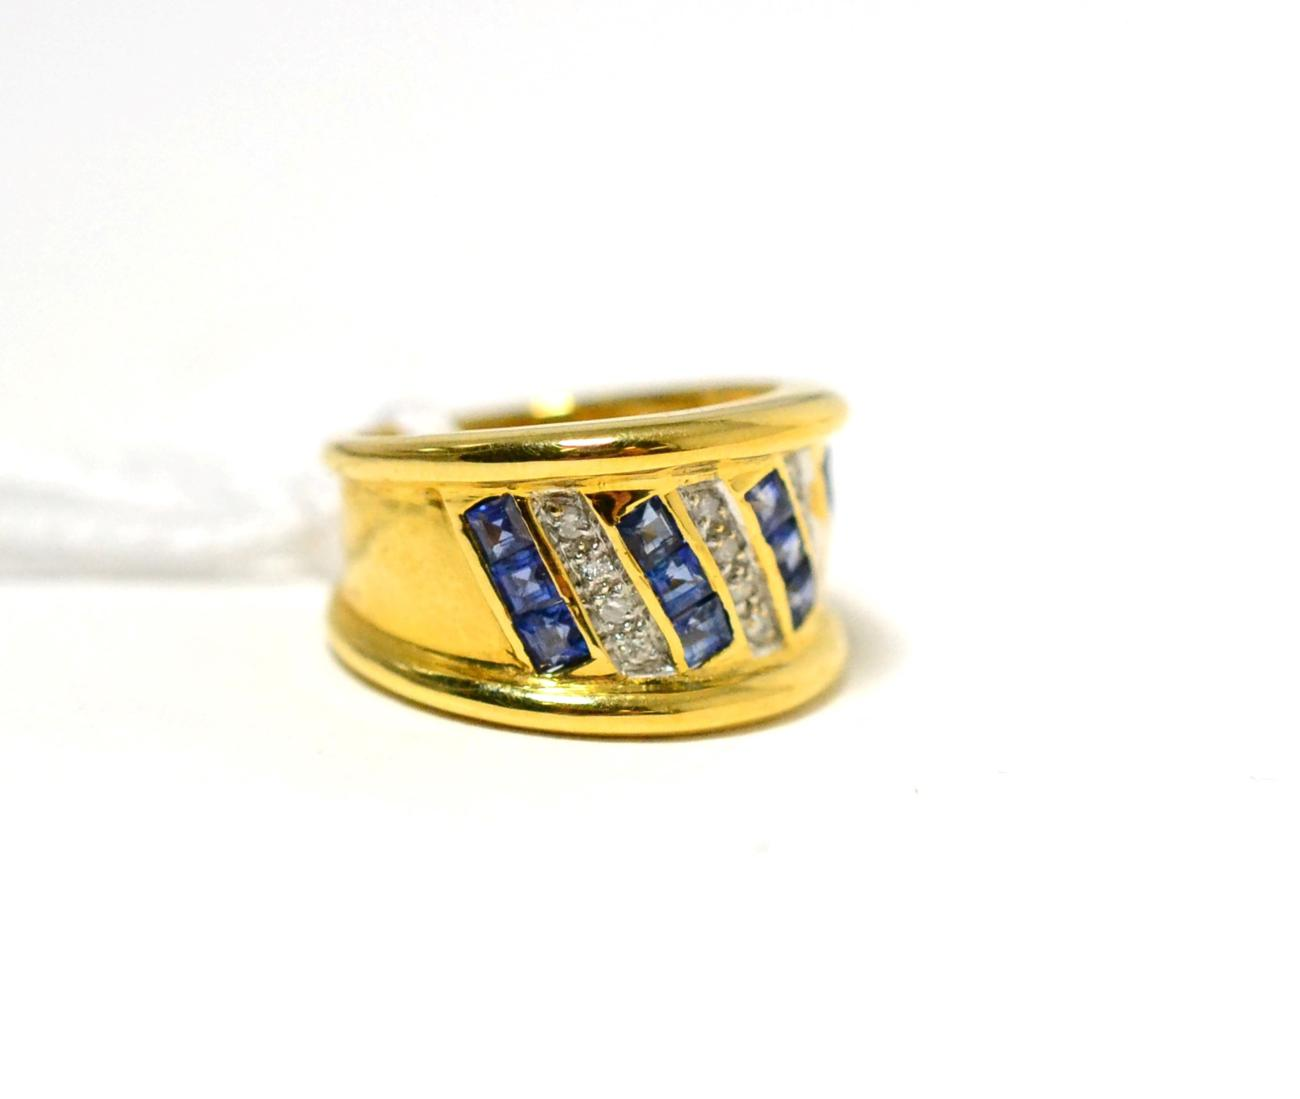 Tennants Auctioneers: A sapphire and diamond ring